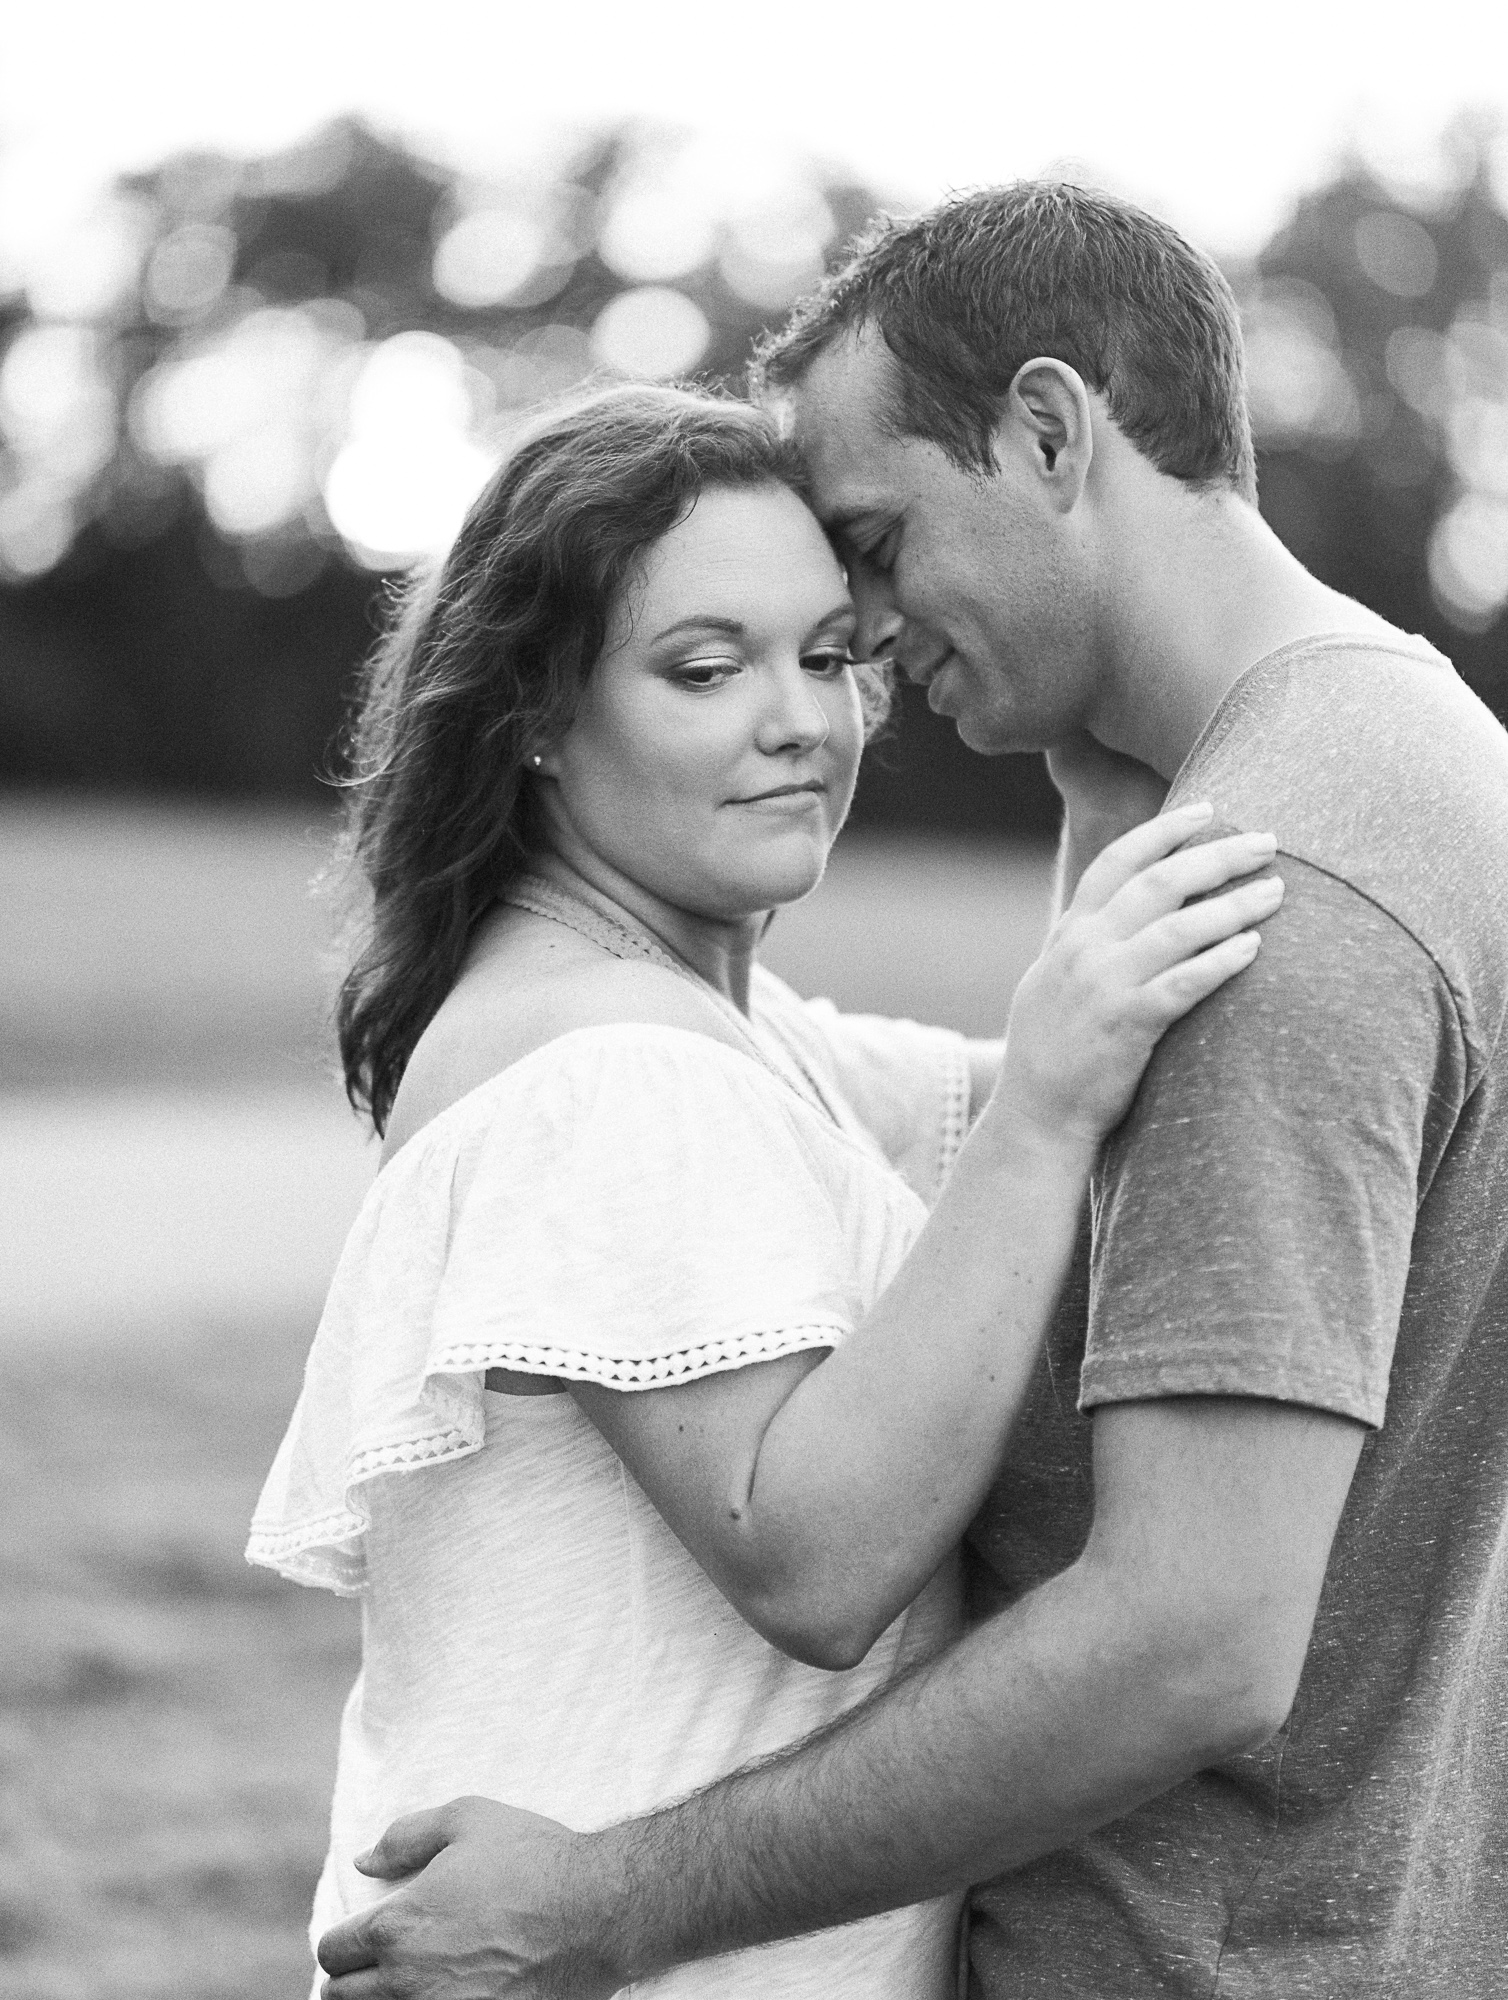 lafayette indiana engagement photos ross camp-35.jpg